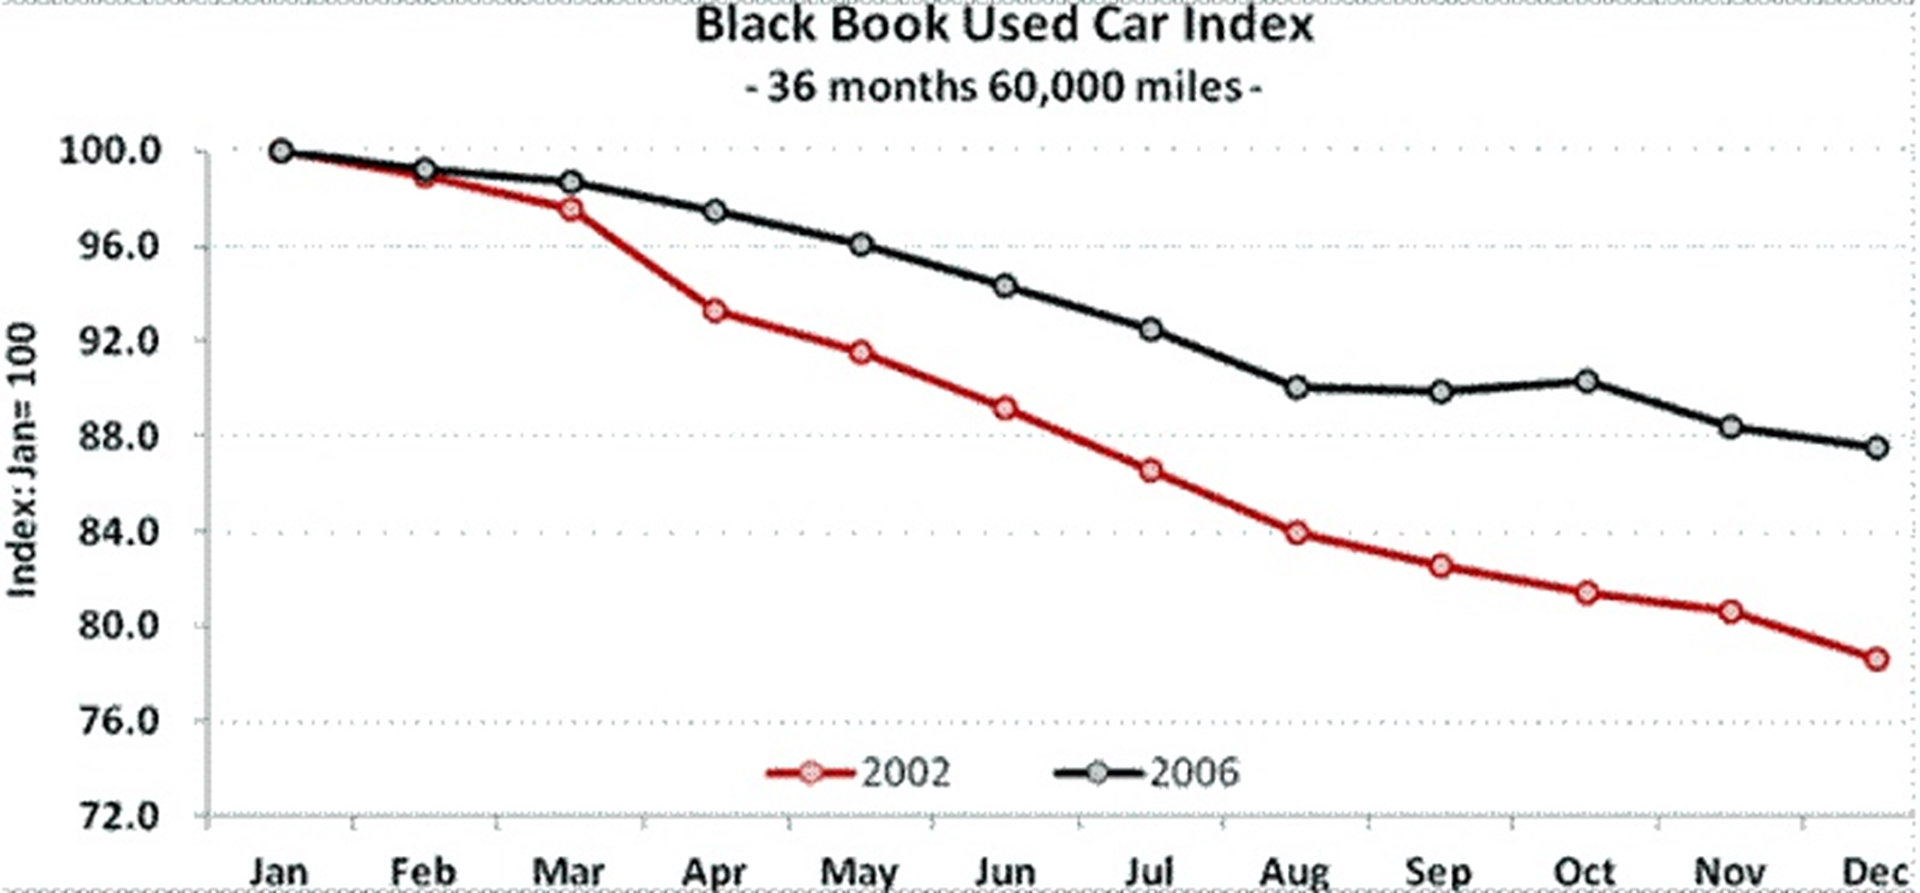 Black Book Used Car Index